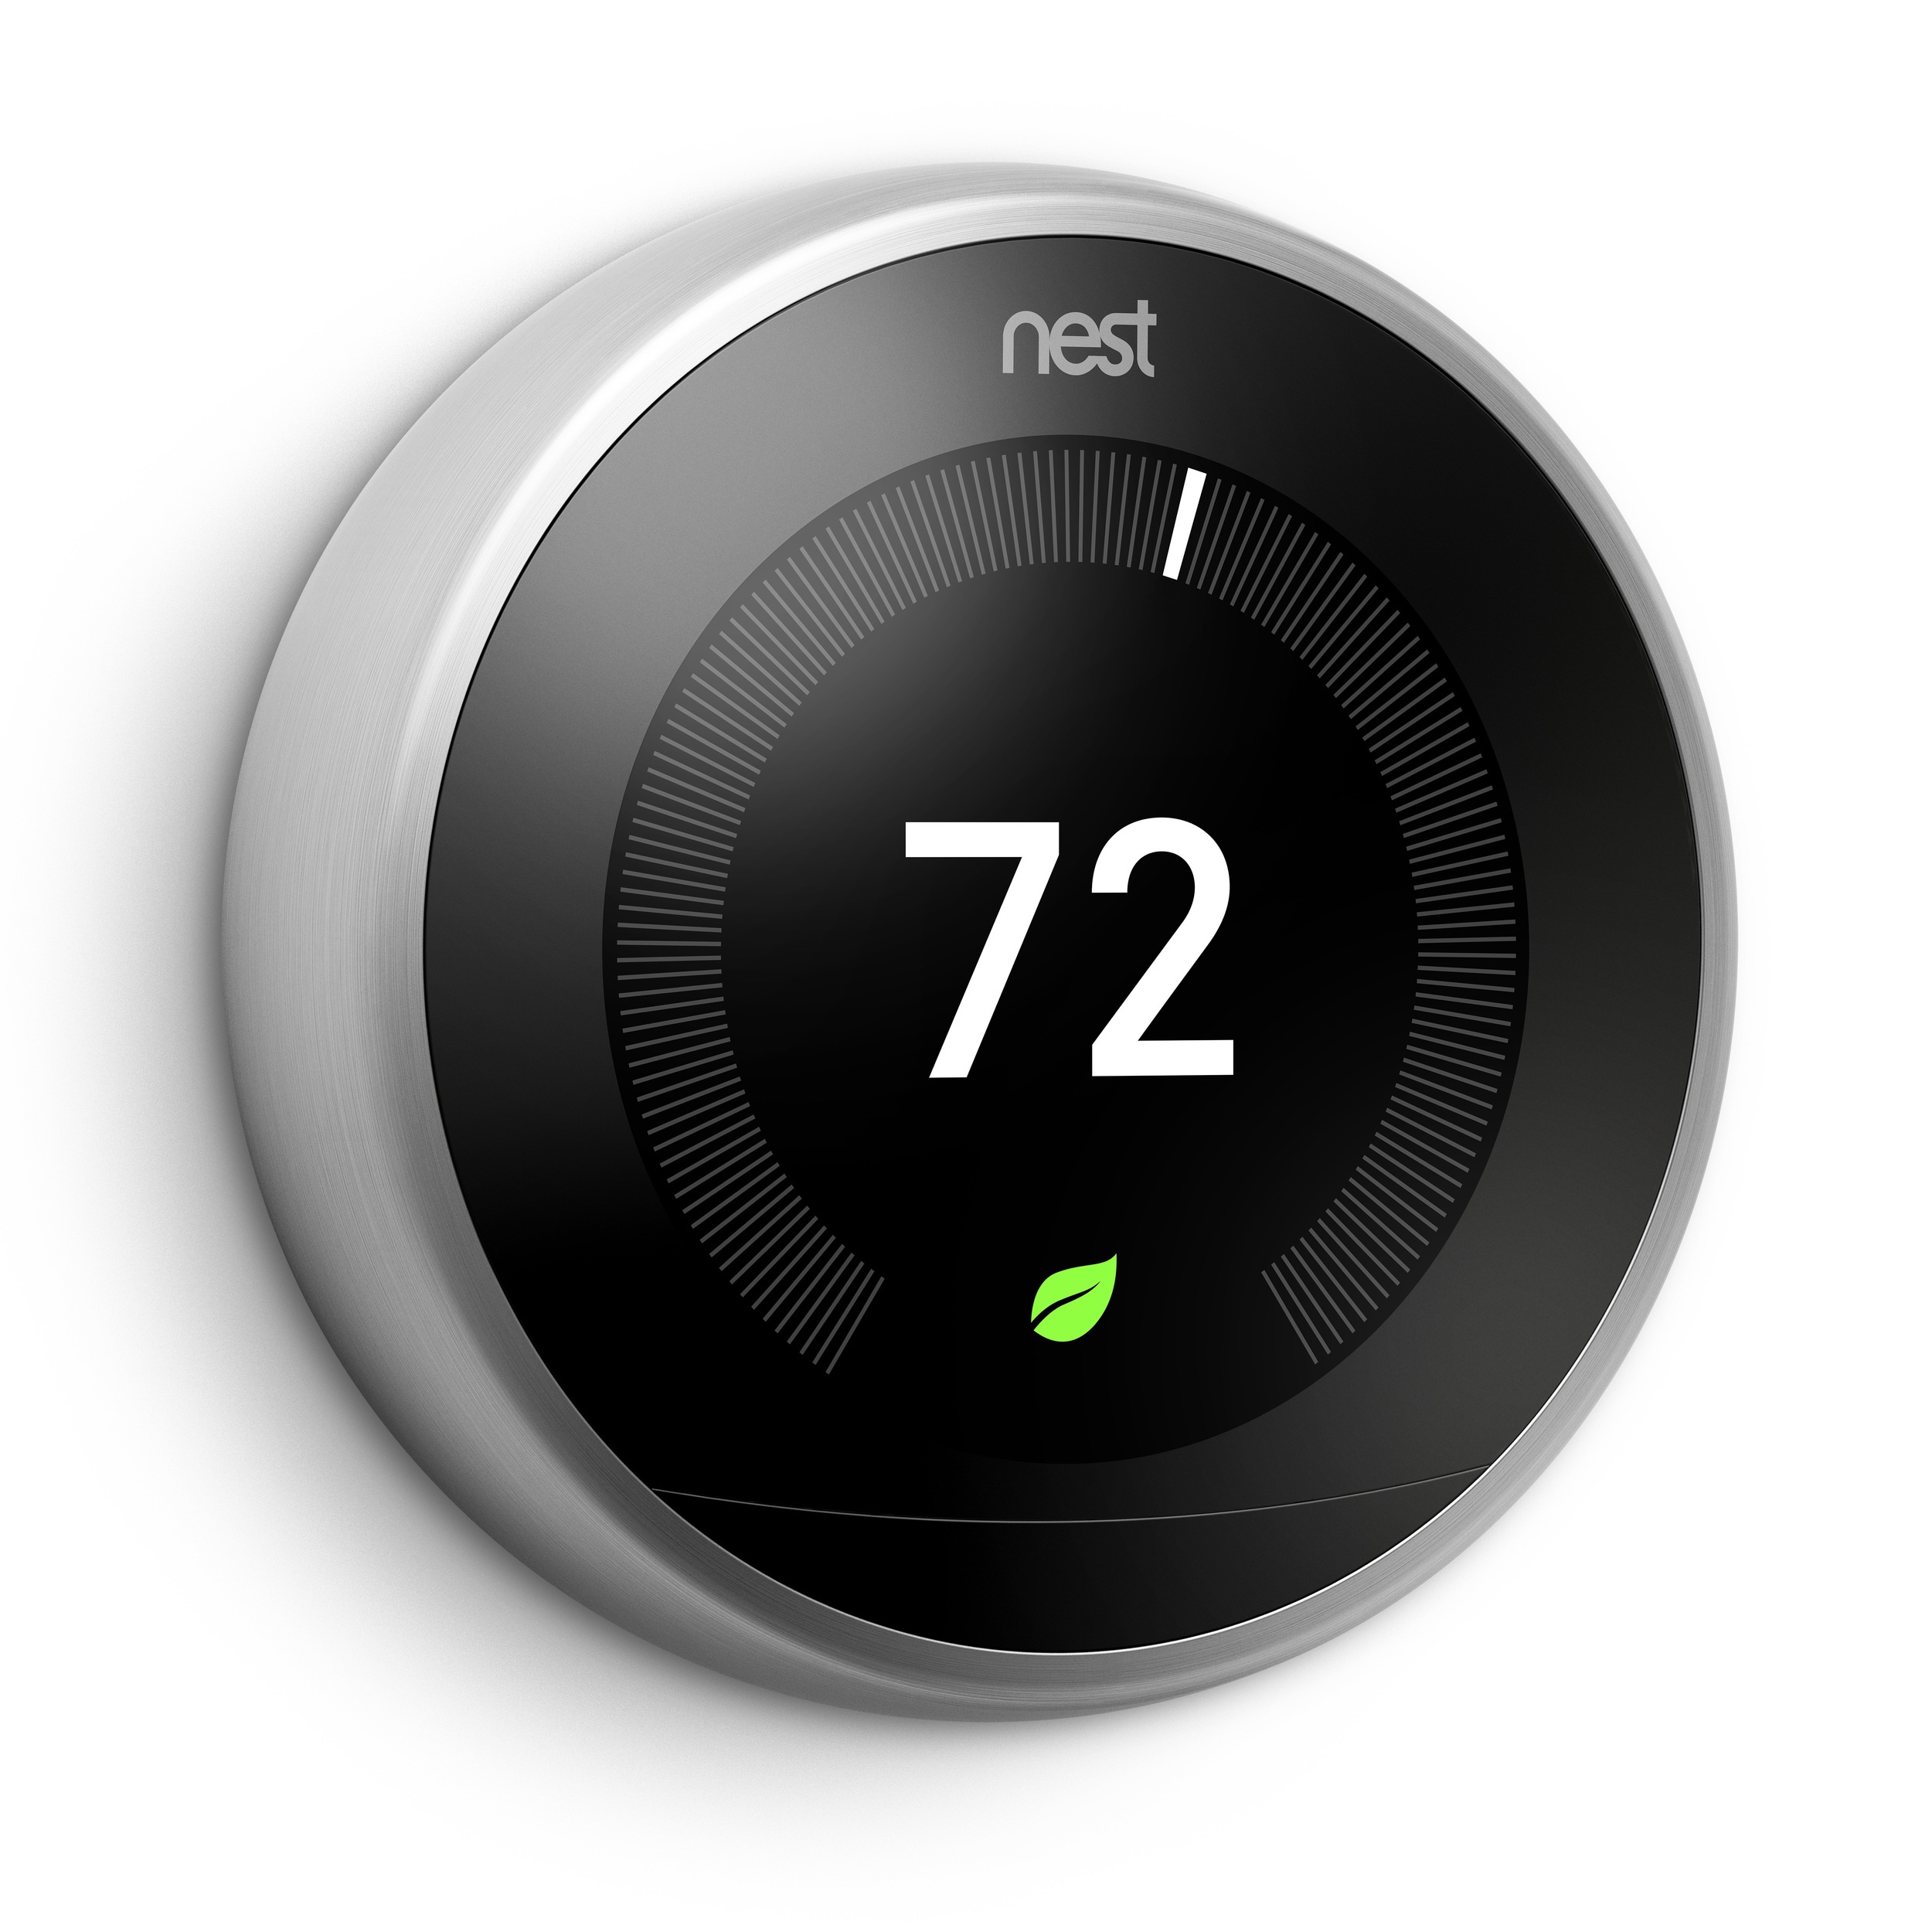 Nest Thermostat - Phograph courtesy of NEST